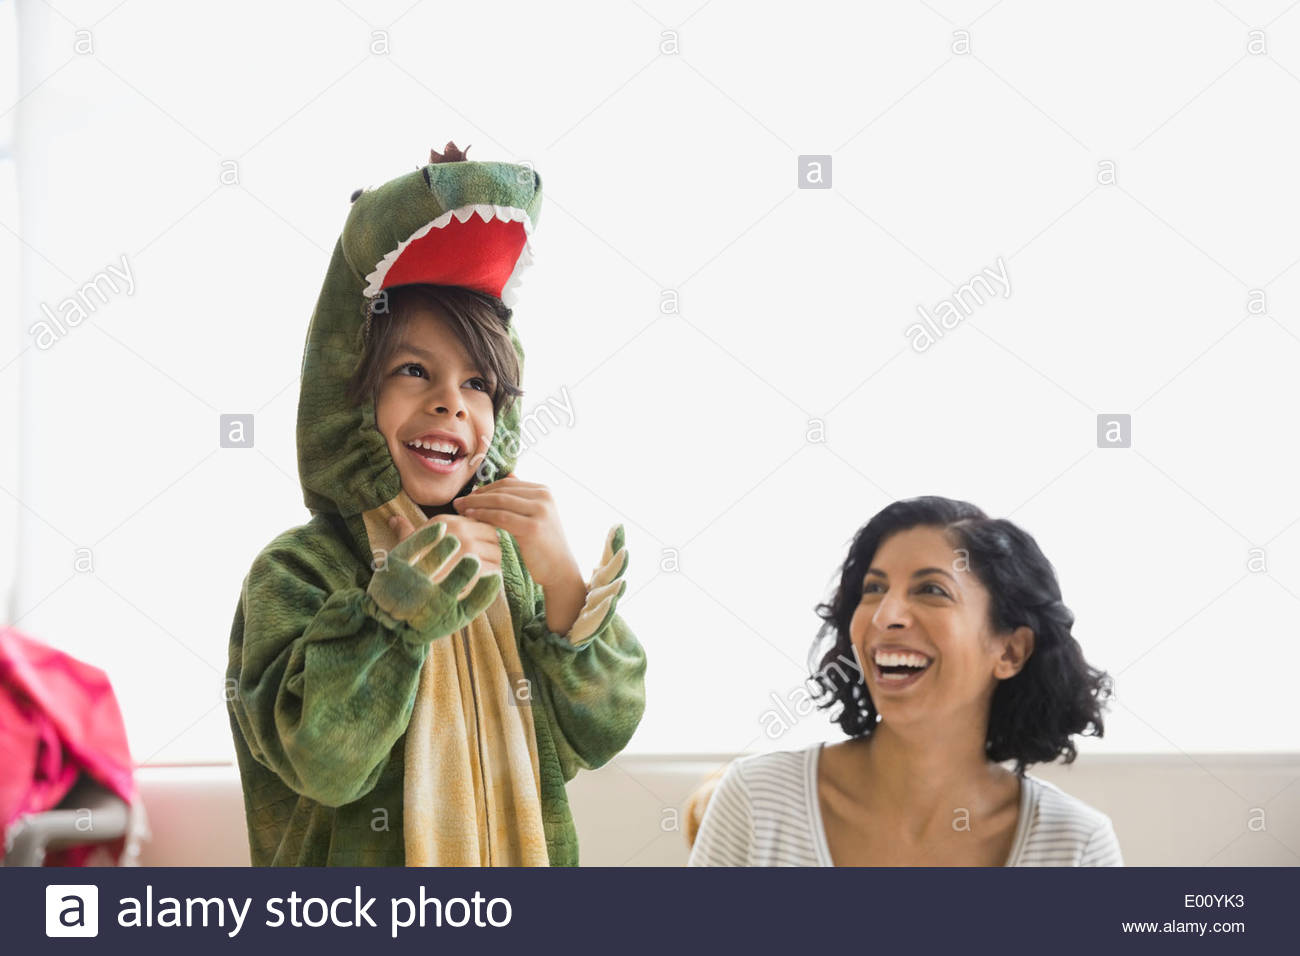 Boy in dragon costume laughing with mother - Stock Image